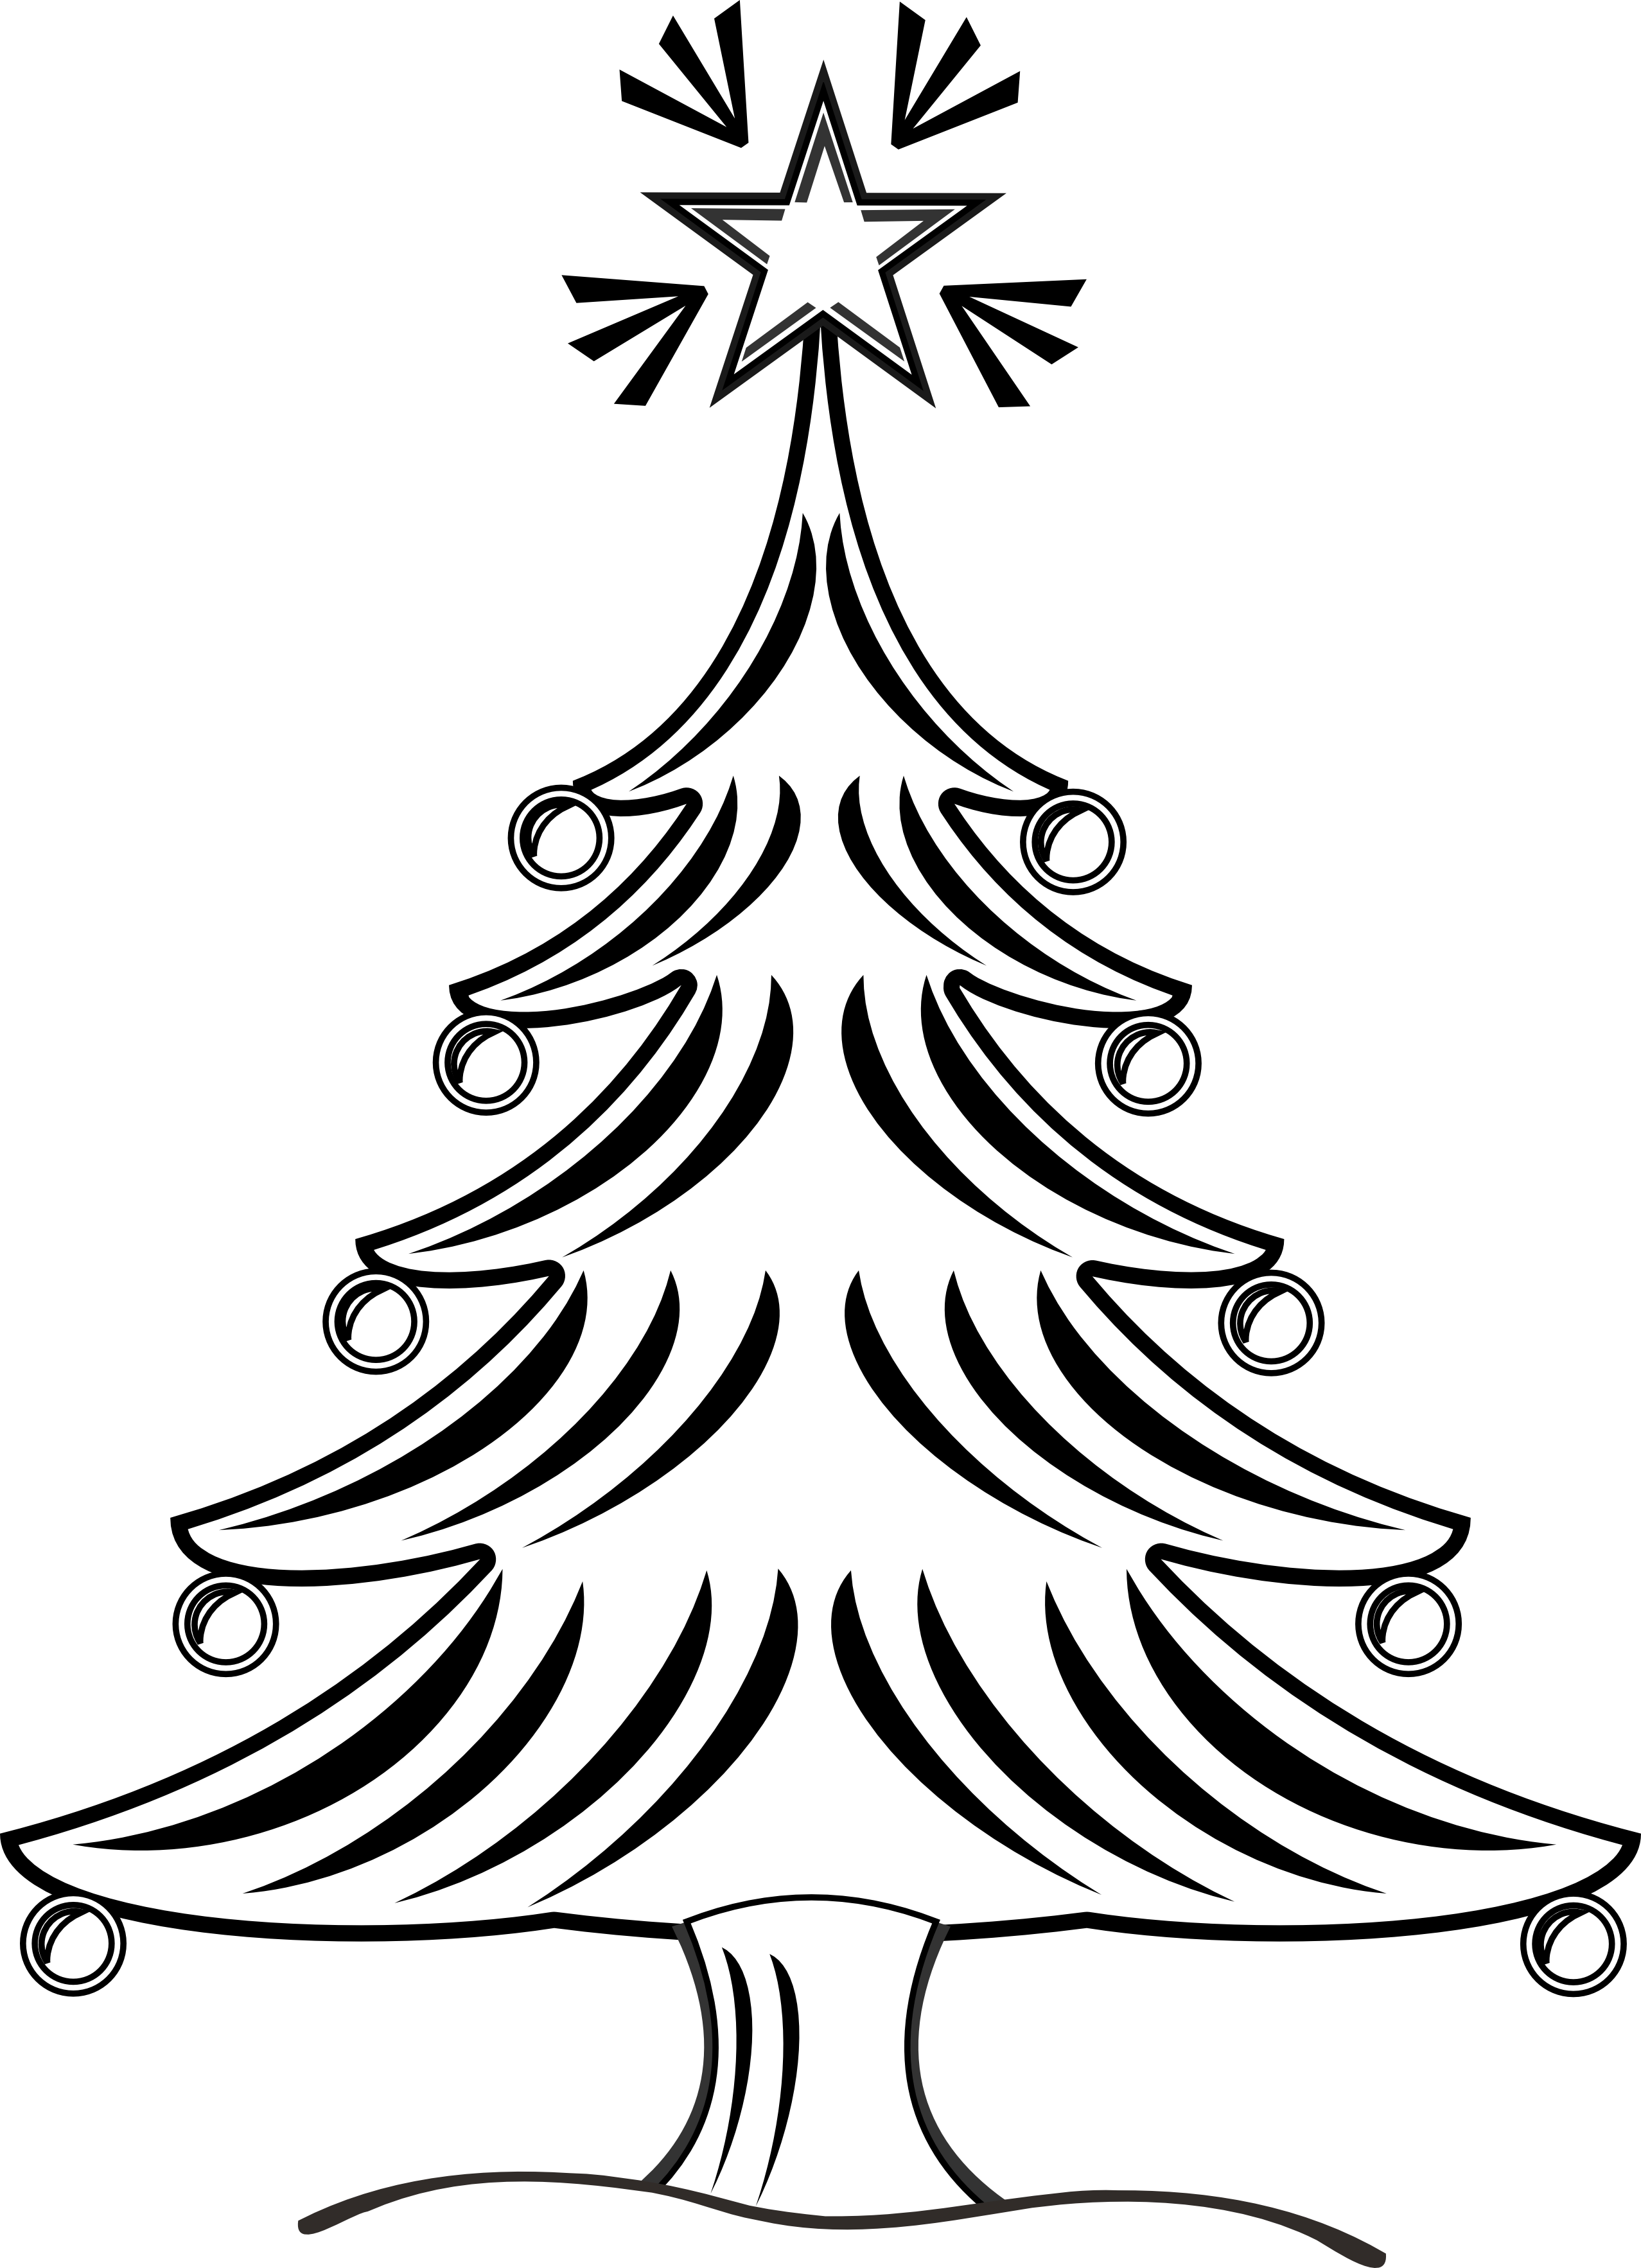 Images of Christmas Lights Drawing - Christmas Tree Decoration Ideas vector free stock